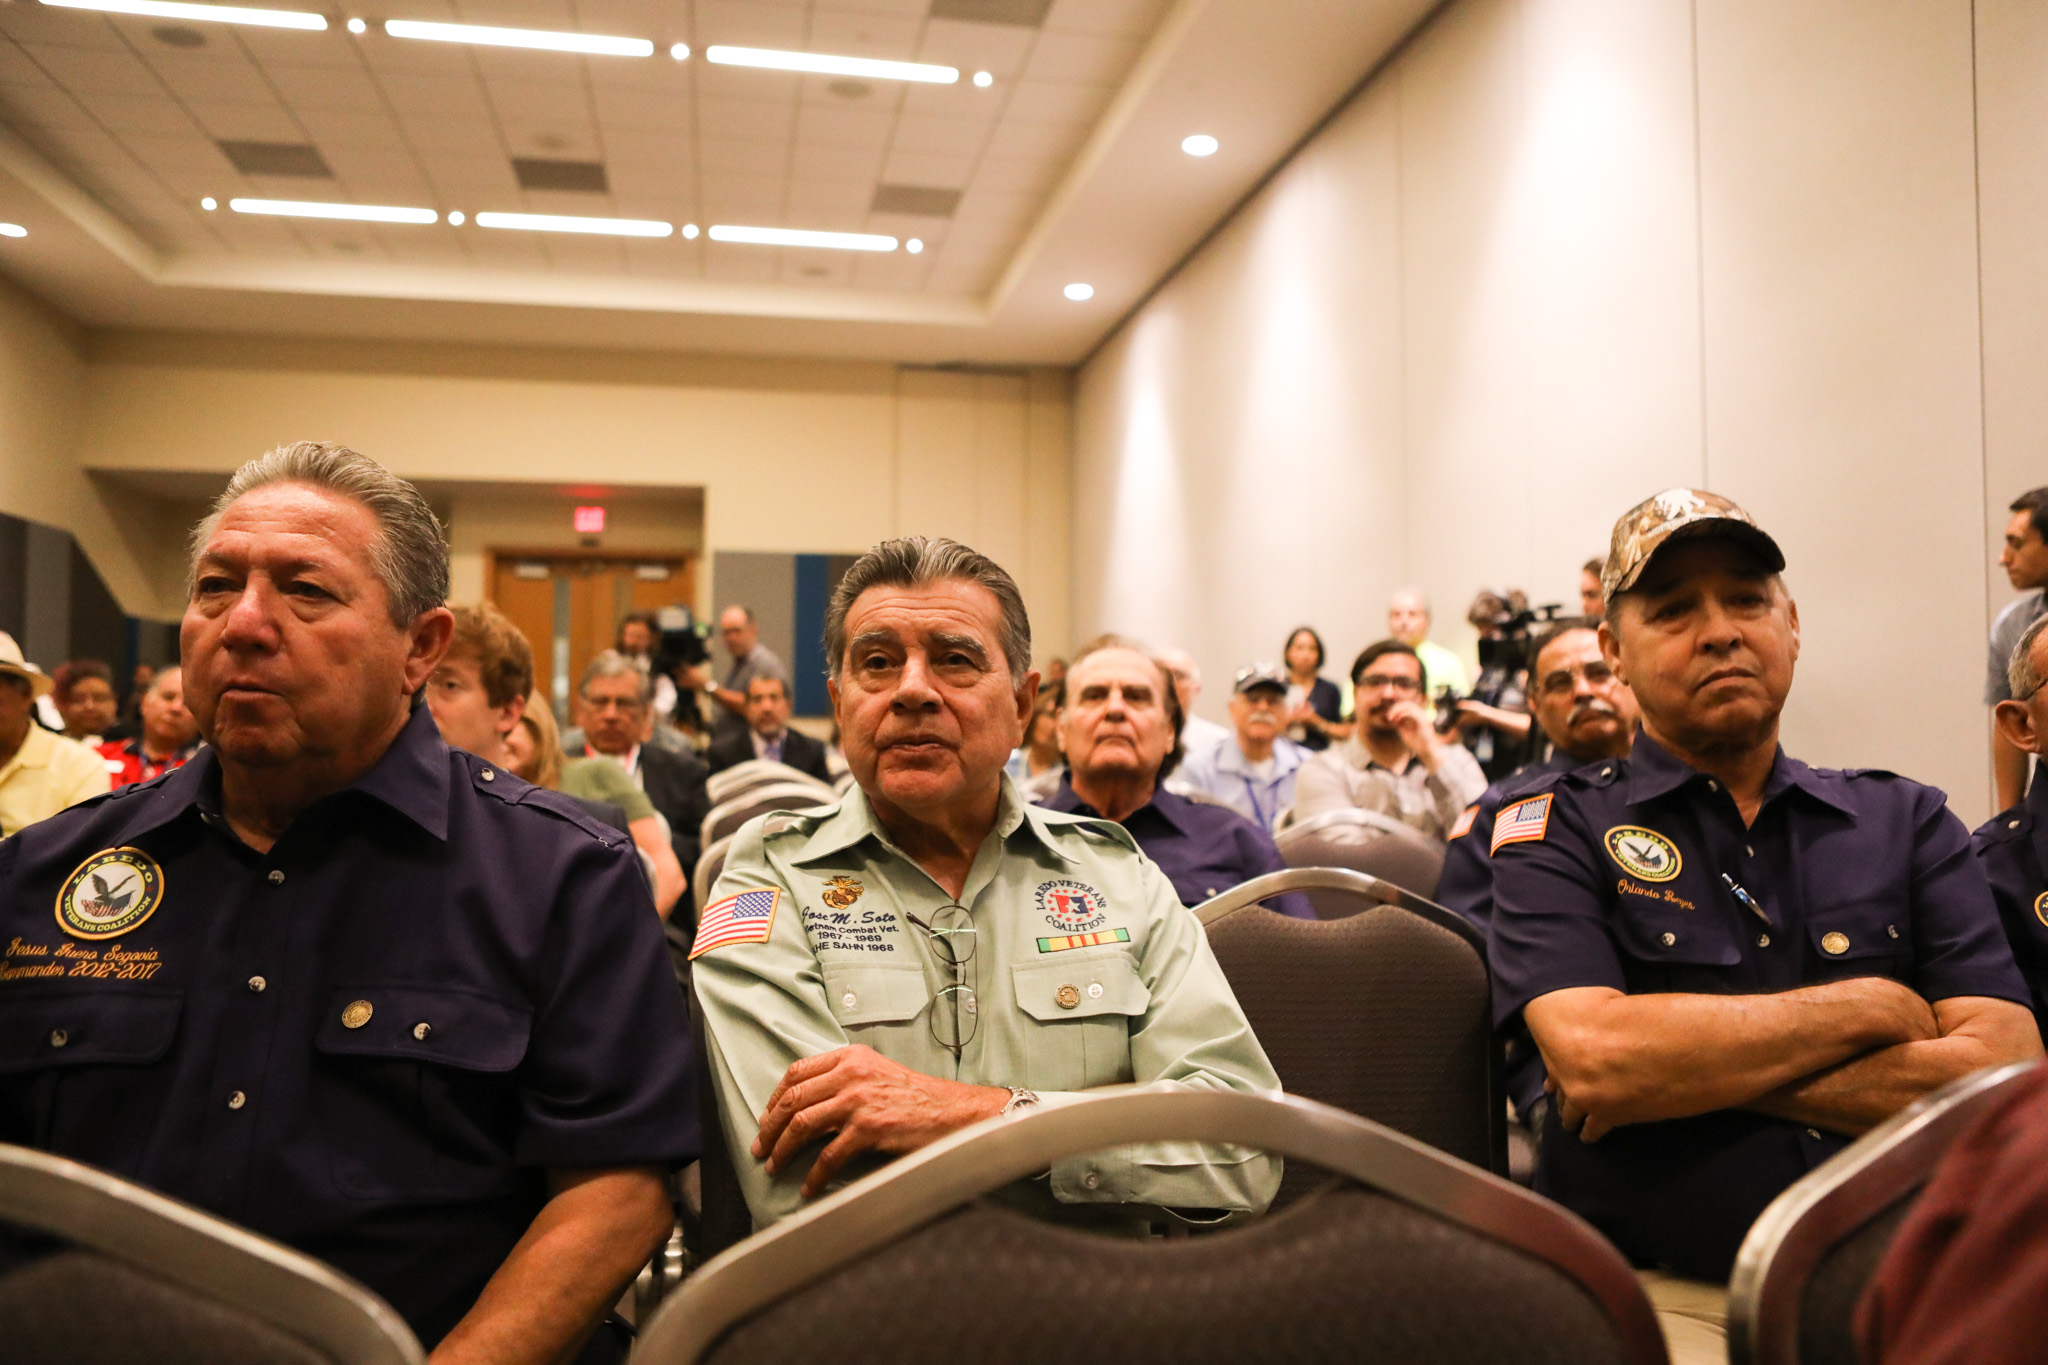 Laredo Veterans Coalition members (from left) Jesus Segovia, Jose Soto, and Orlando Reyes attend the press conference at the 2017 LULAC National Convention & Exposition.